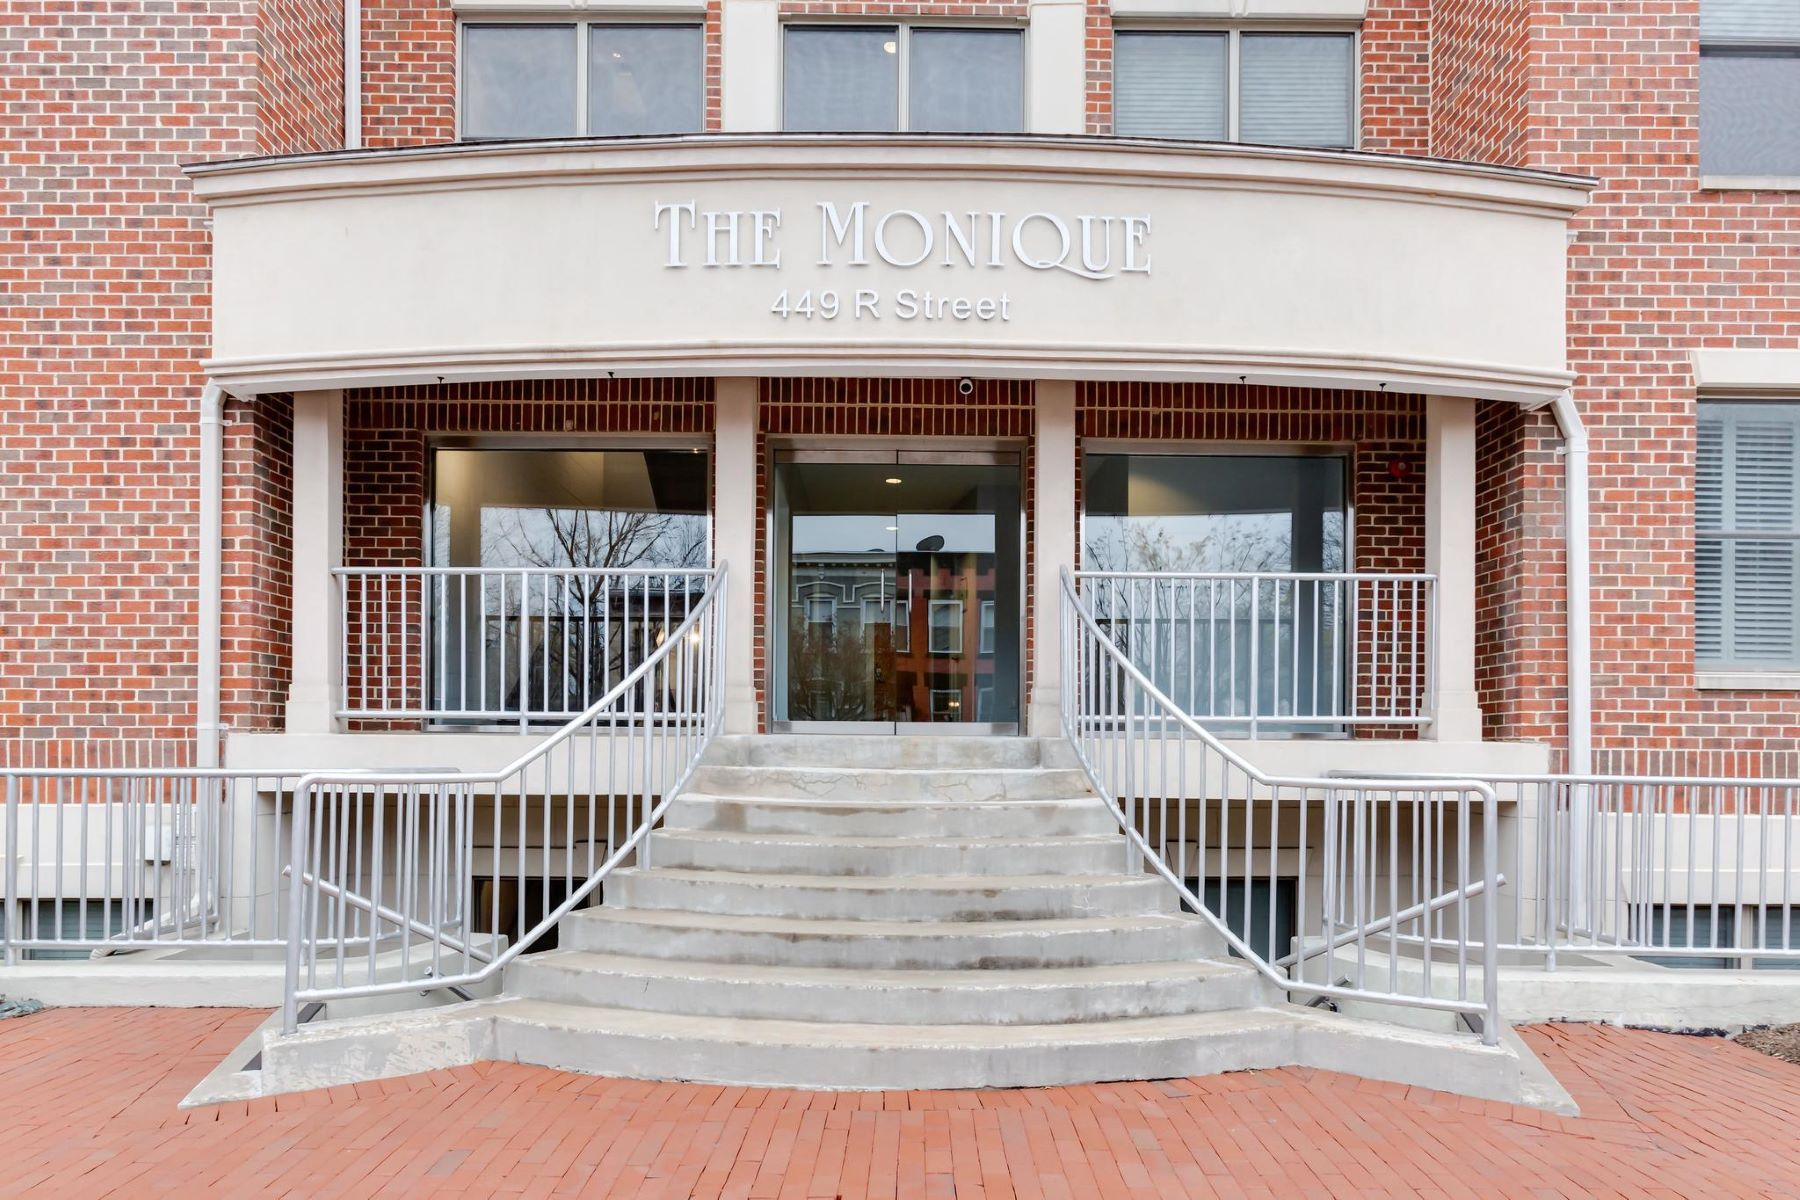 Condominium for Sale at 449 R St NW #11 Washington, District Of Columbia 20001 United States